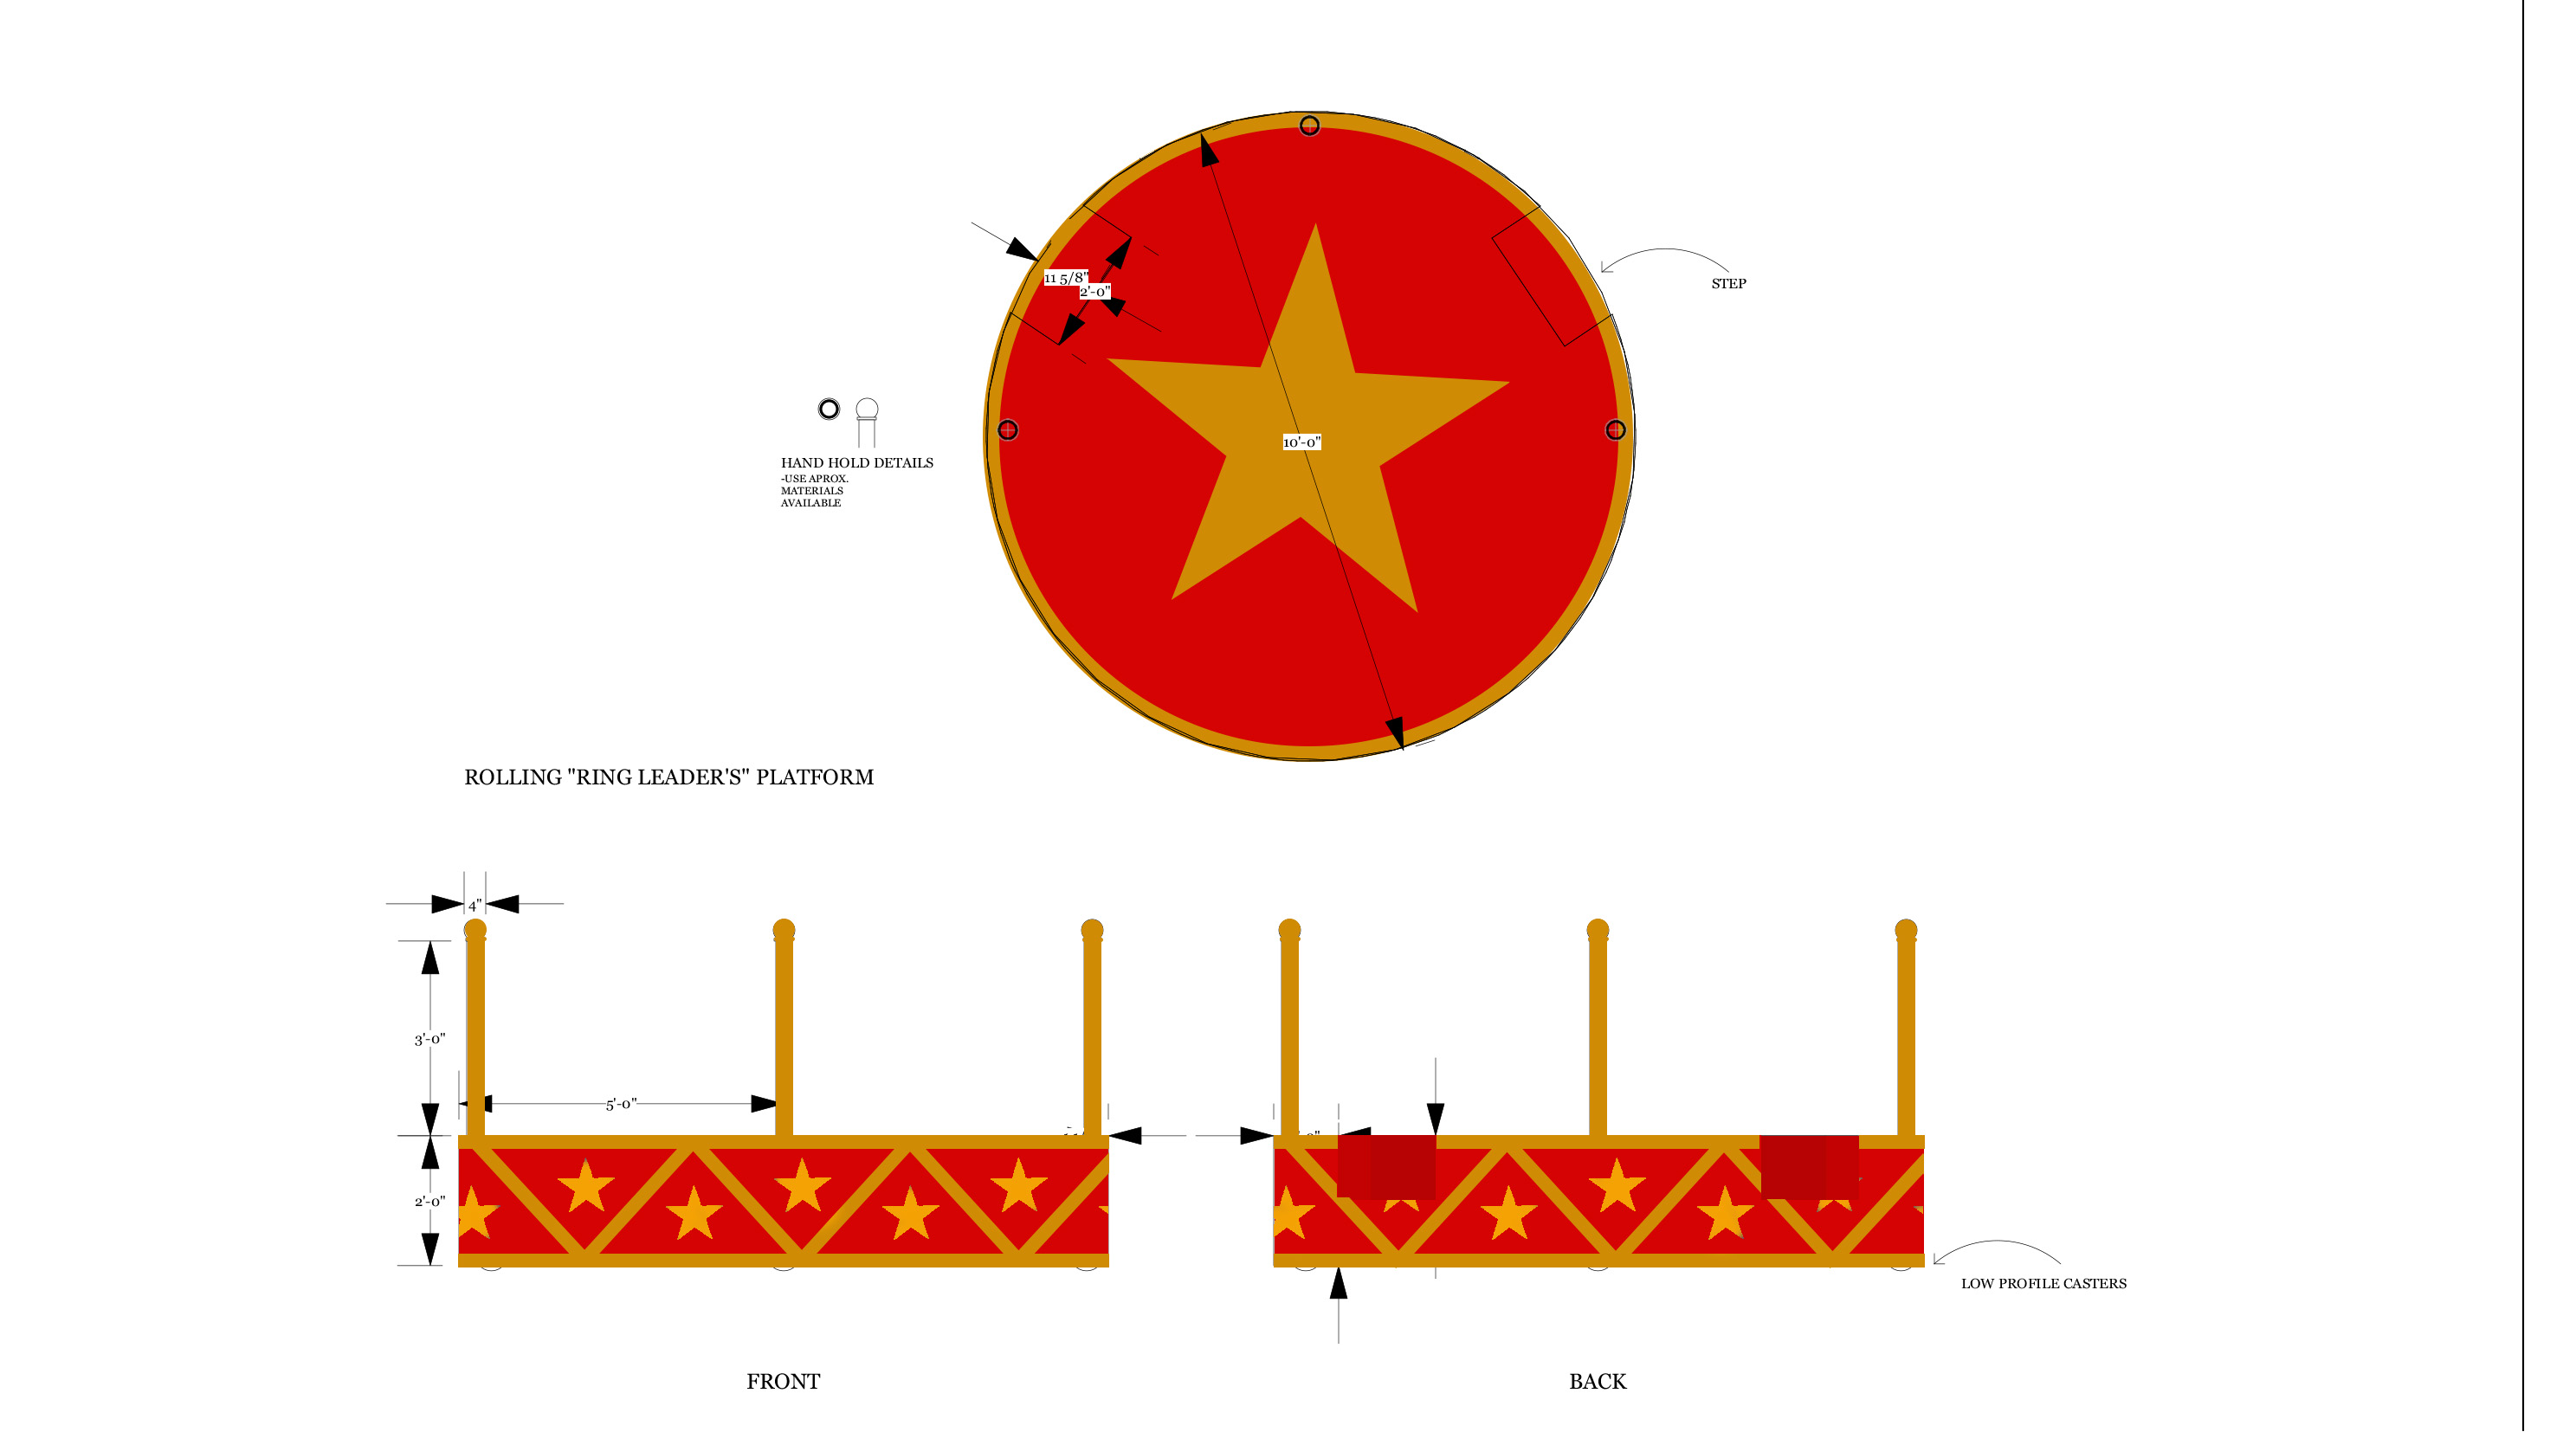 Ringleader platform paint elevation